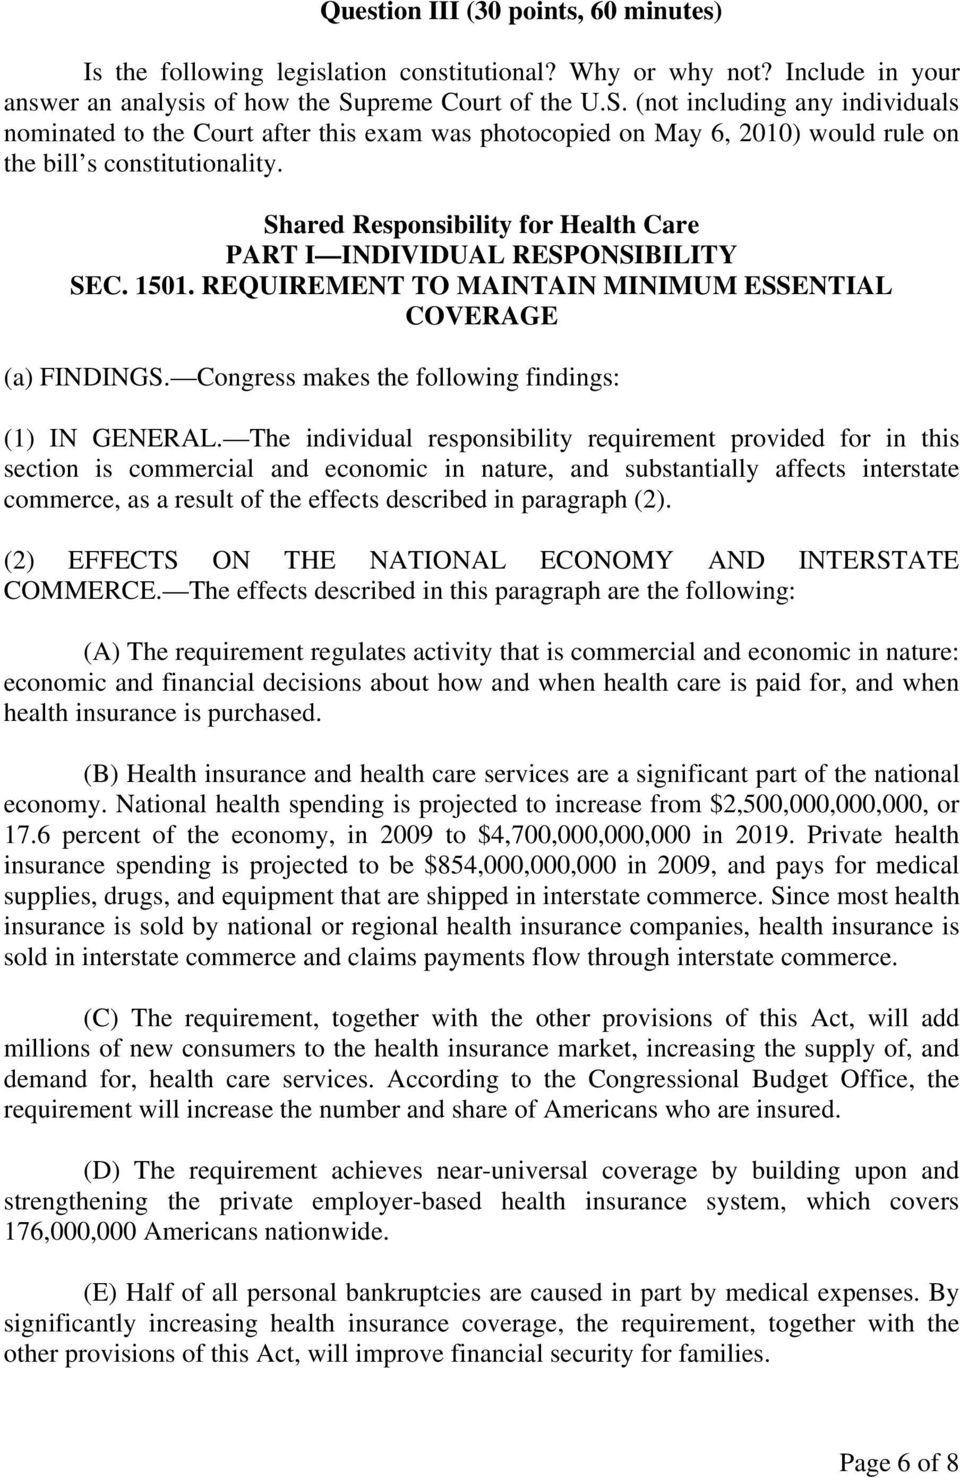 Shared Responsibility for Health Care PART I INDIVIDUAL RESPONSIBILITY SEC. 1501. REQUIREMENT TO MAINTAIN MINIMUM ESSENTIAL COVERAGE (a) FINDINGS.